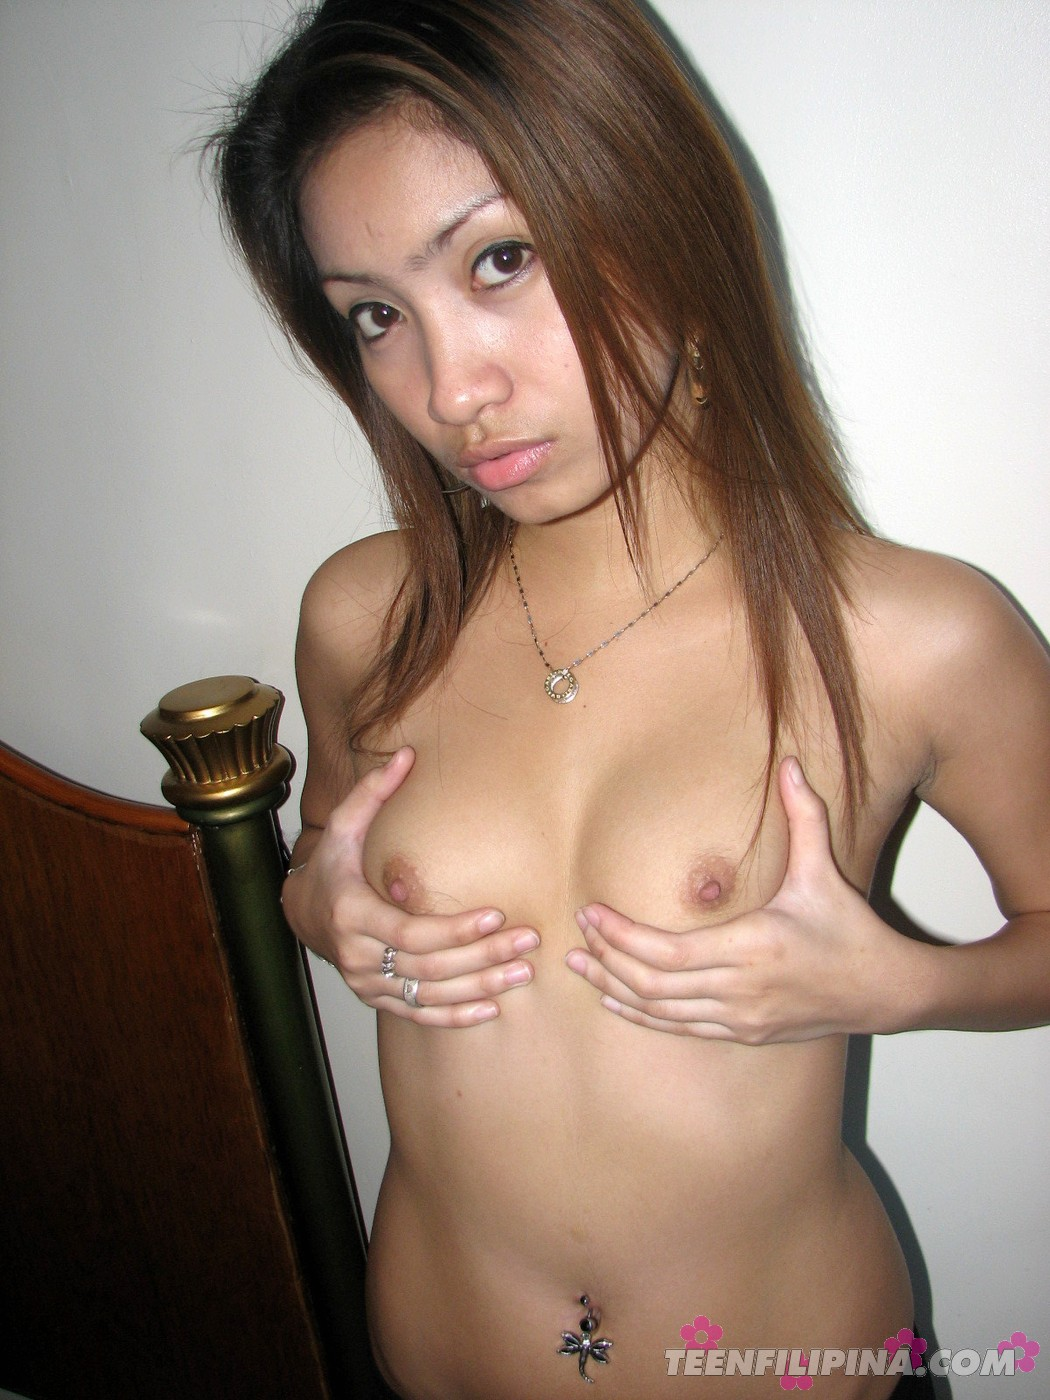 Dazzling Young Chick Exposes Her Gorgeous Bare Body On Bed -1064